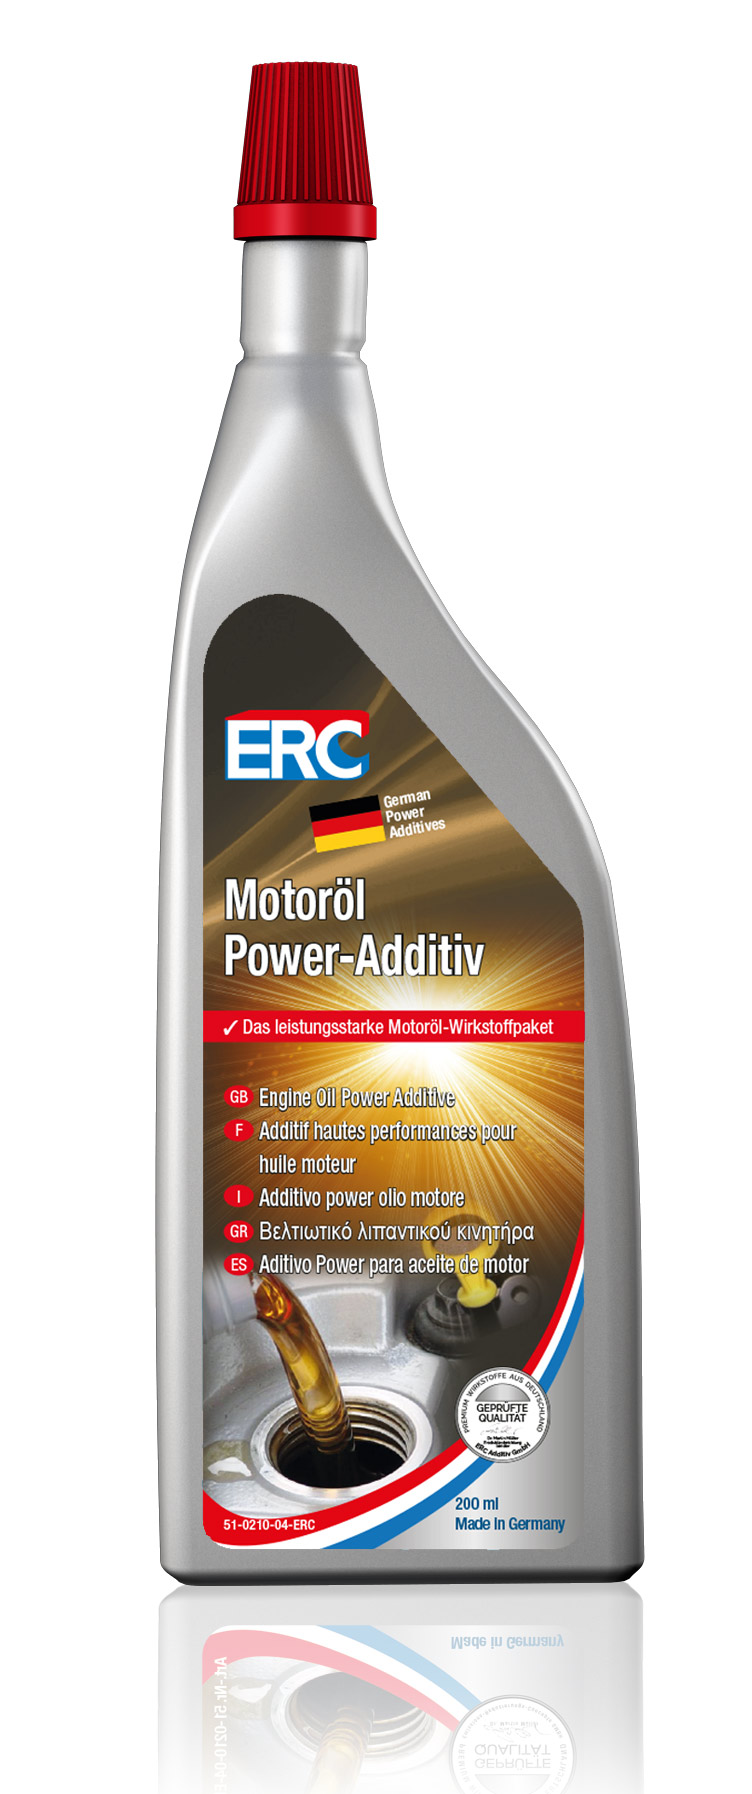 1 x 200 ml ERC MotorOel Power Additiv Öl Additiv Ölzusatz Otto u. Diesel Motoren